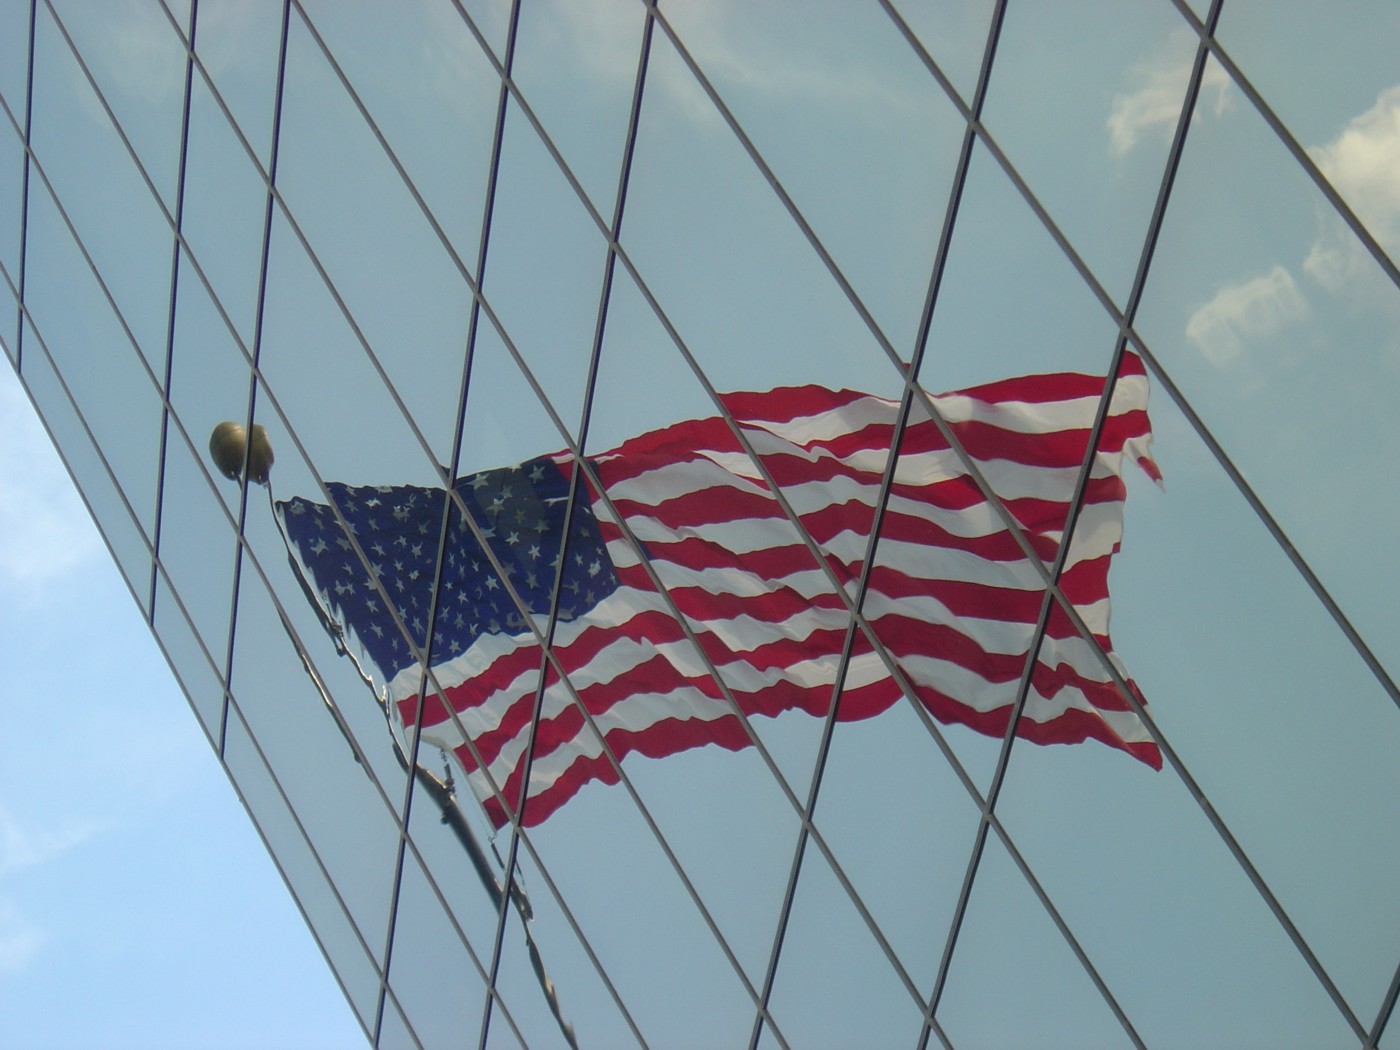 American flag reflected on the glass surface of a building, distorted.